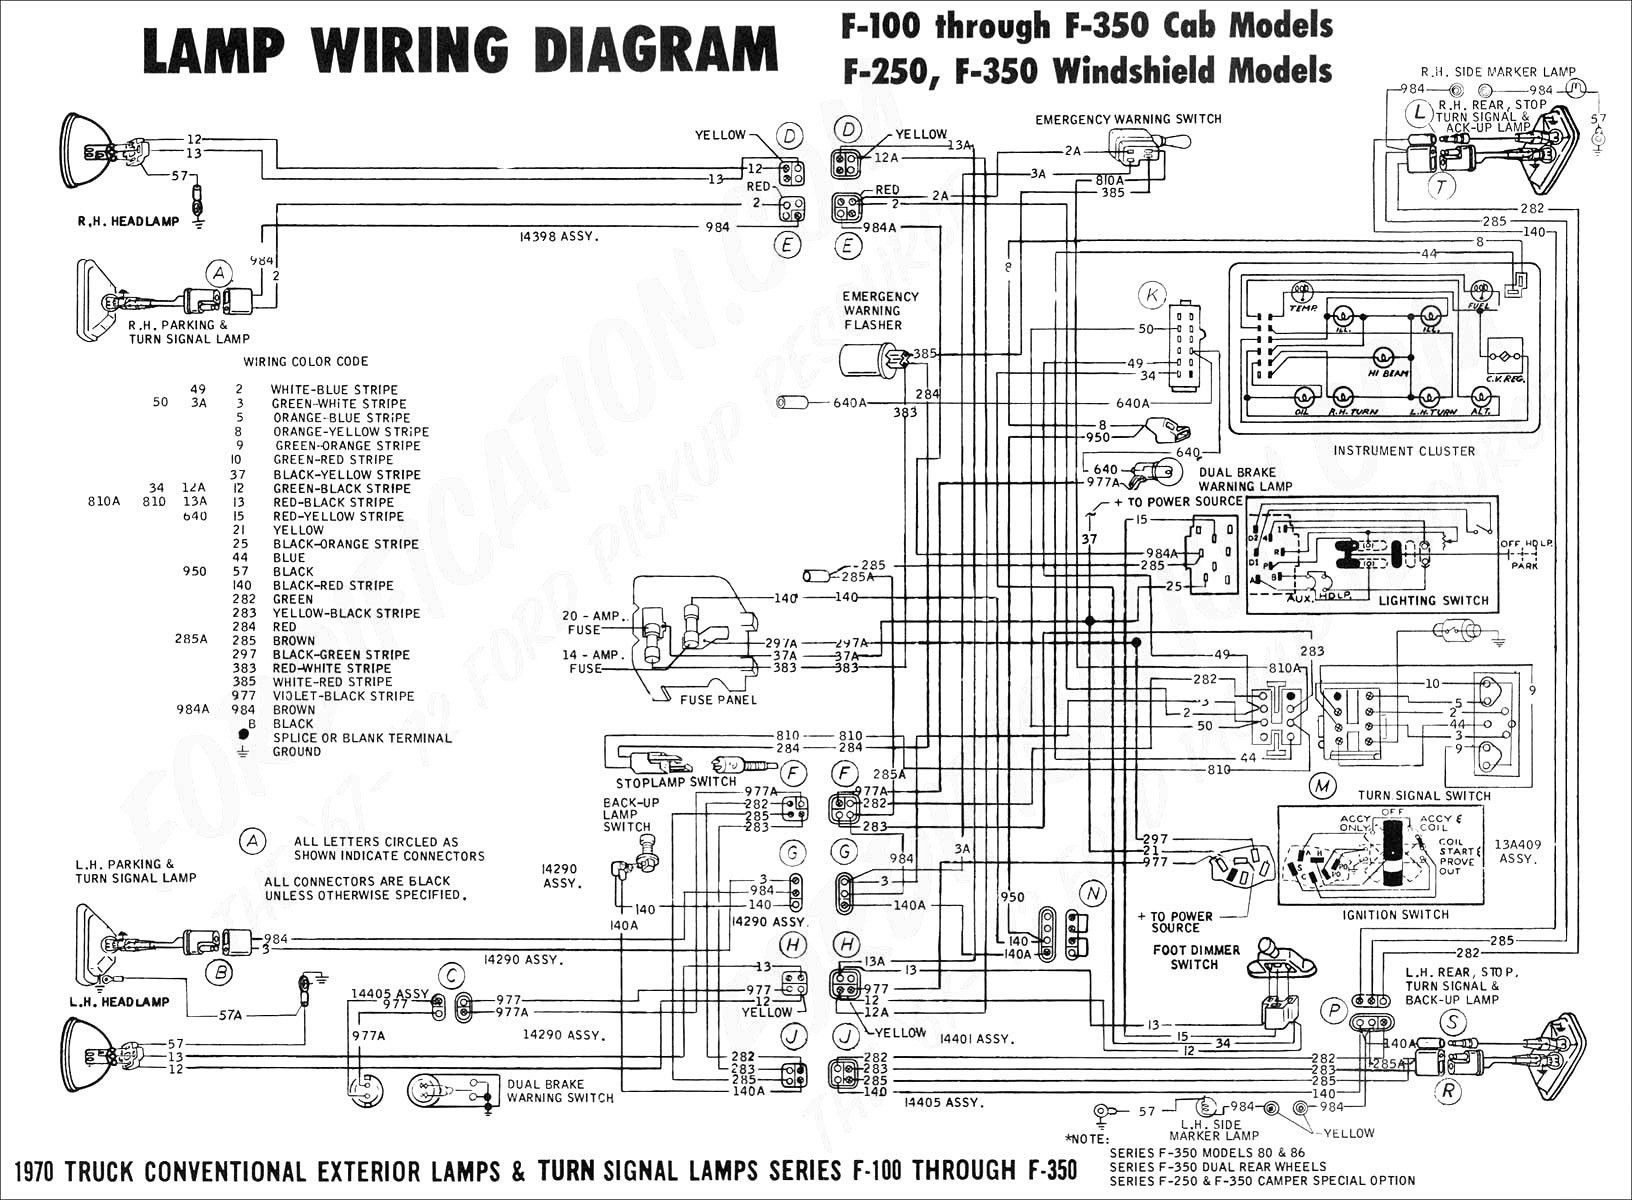 99 F250 Trailer Tail Lights Not Working Unique Wiring Diagram 3 Pin Plug Australia Diagramsample